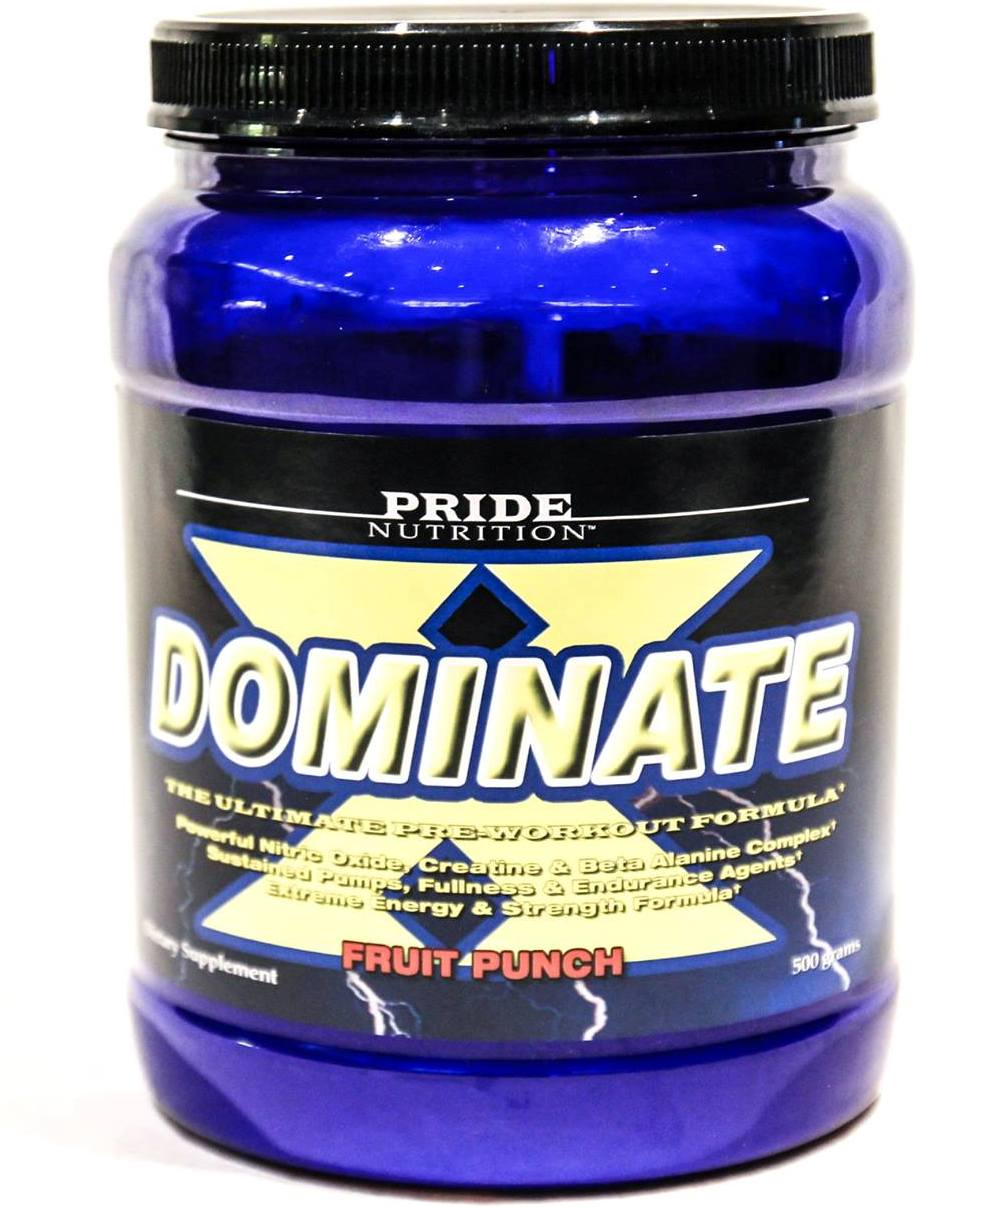 pride-dominate-fruit-punch-crop.jpg